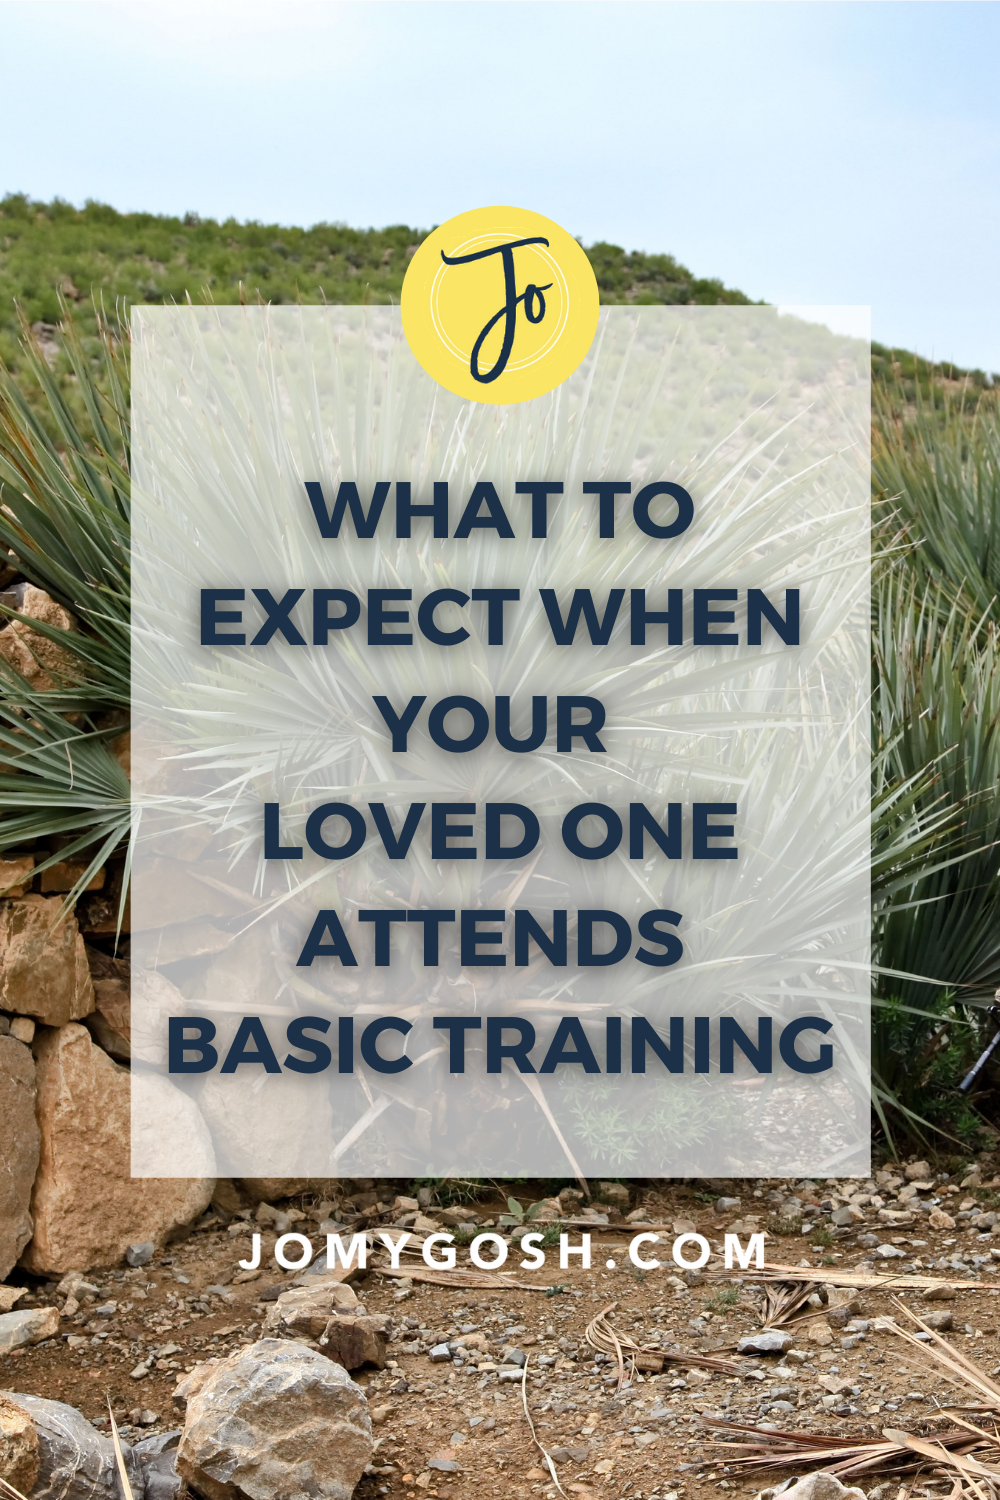 This step-by-step guide helps families of new recruits learn what to expect when their loved one joins boot camp through guidance, tips, and inspiration. #militaryfamily #milfam #military #bootcamp #basictraining #milspouse #militaryspouse #milso #milsos #milspo #milspos #militarymom #militarydad #whattoexpect #advice #army #navy #airforce #marines #coastguard #nationalguard #reserves #spaceforce #sailor #soldier #marine